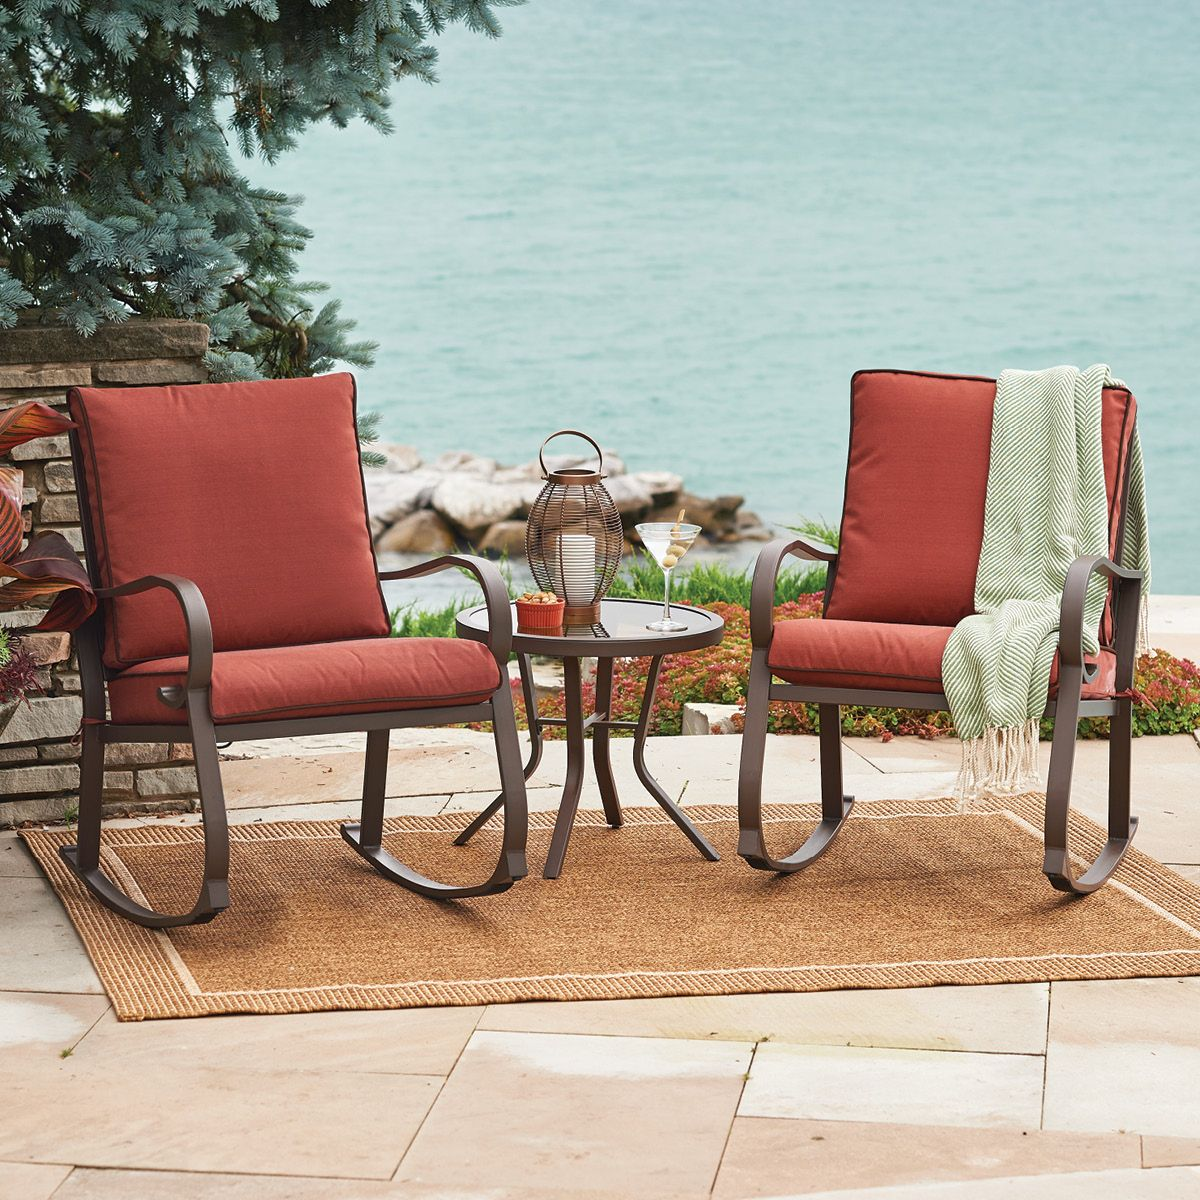 Prime Patio Furniture And Decor Benson Lumber Hardware Lamtechconsult Wood Chair Design Ideas Lamtechconsultcom